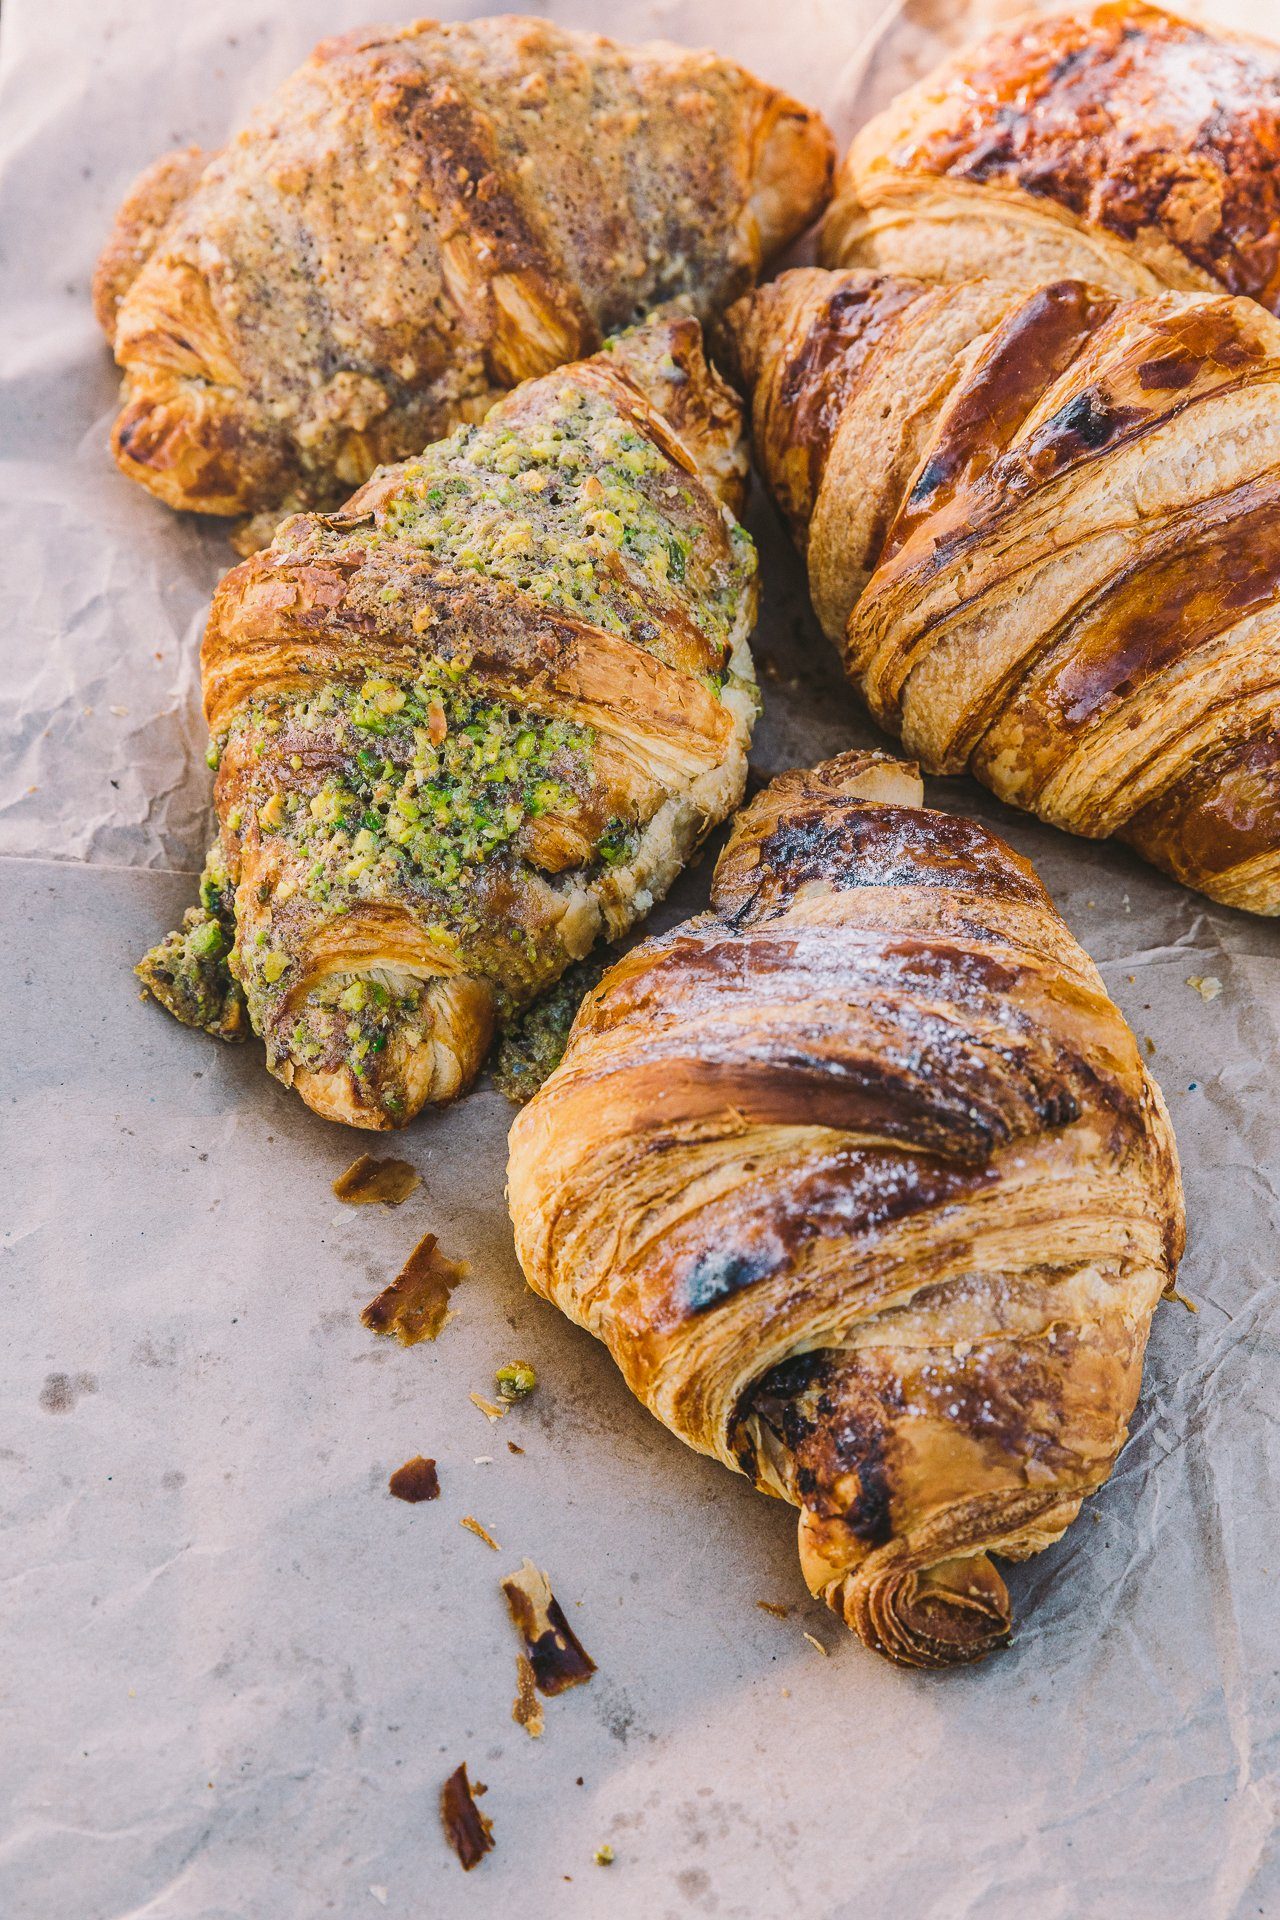 Croissants from Twelve Triangles | Edinburgh Travel Guide by HonestlyYUM